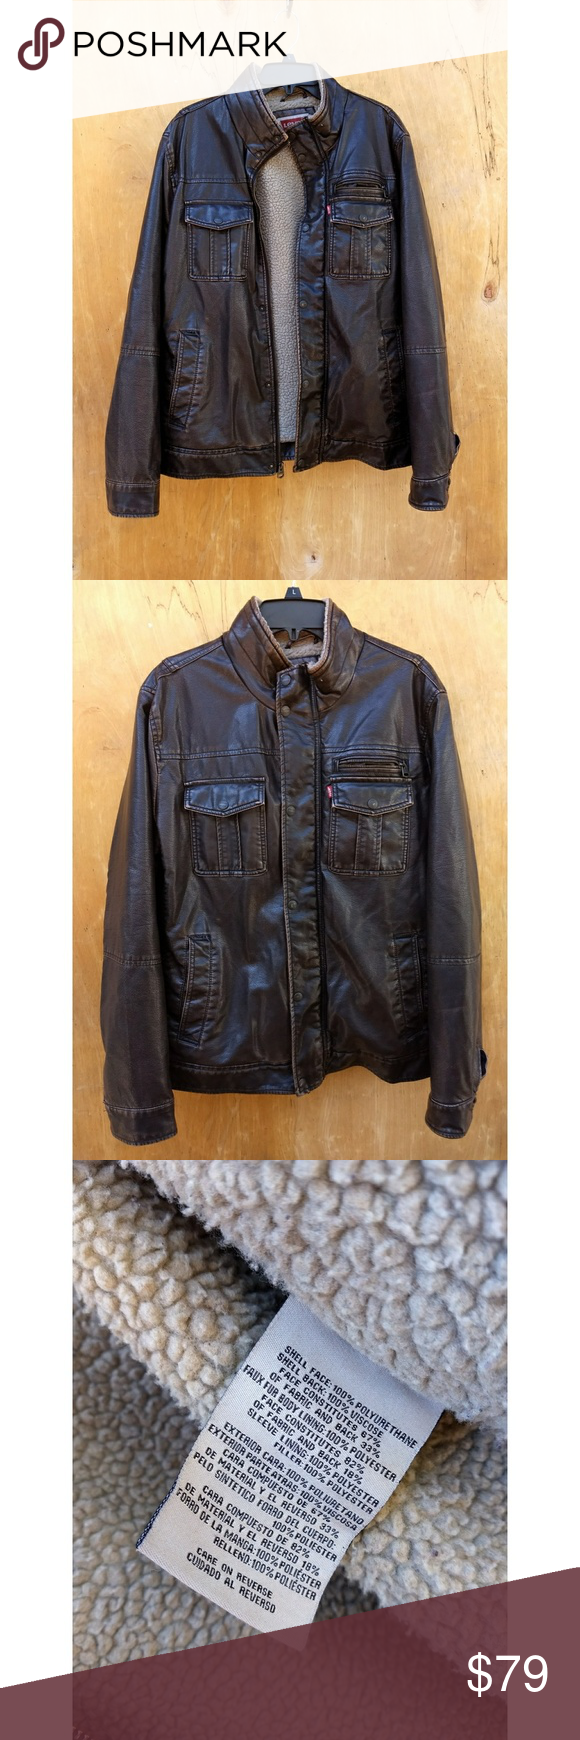 Levi's Brown faux leather jacket In great condition!! One